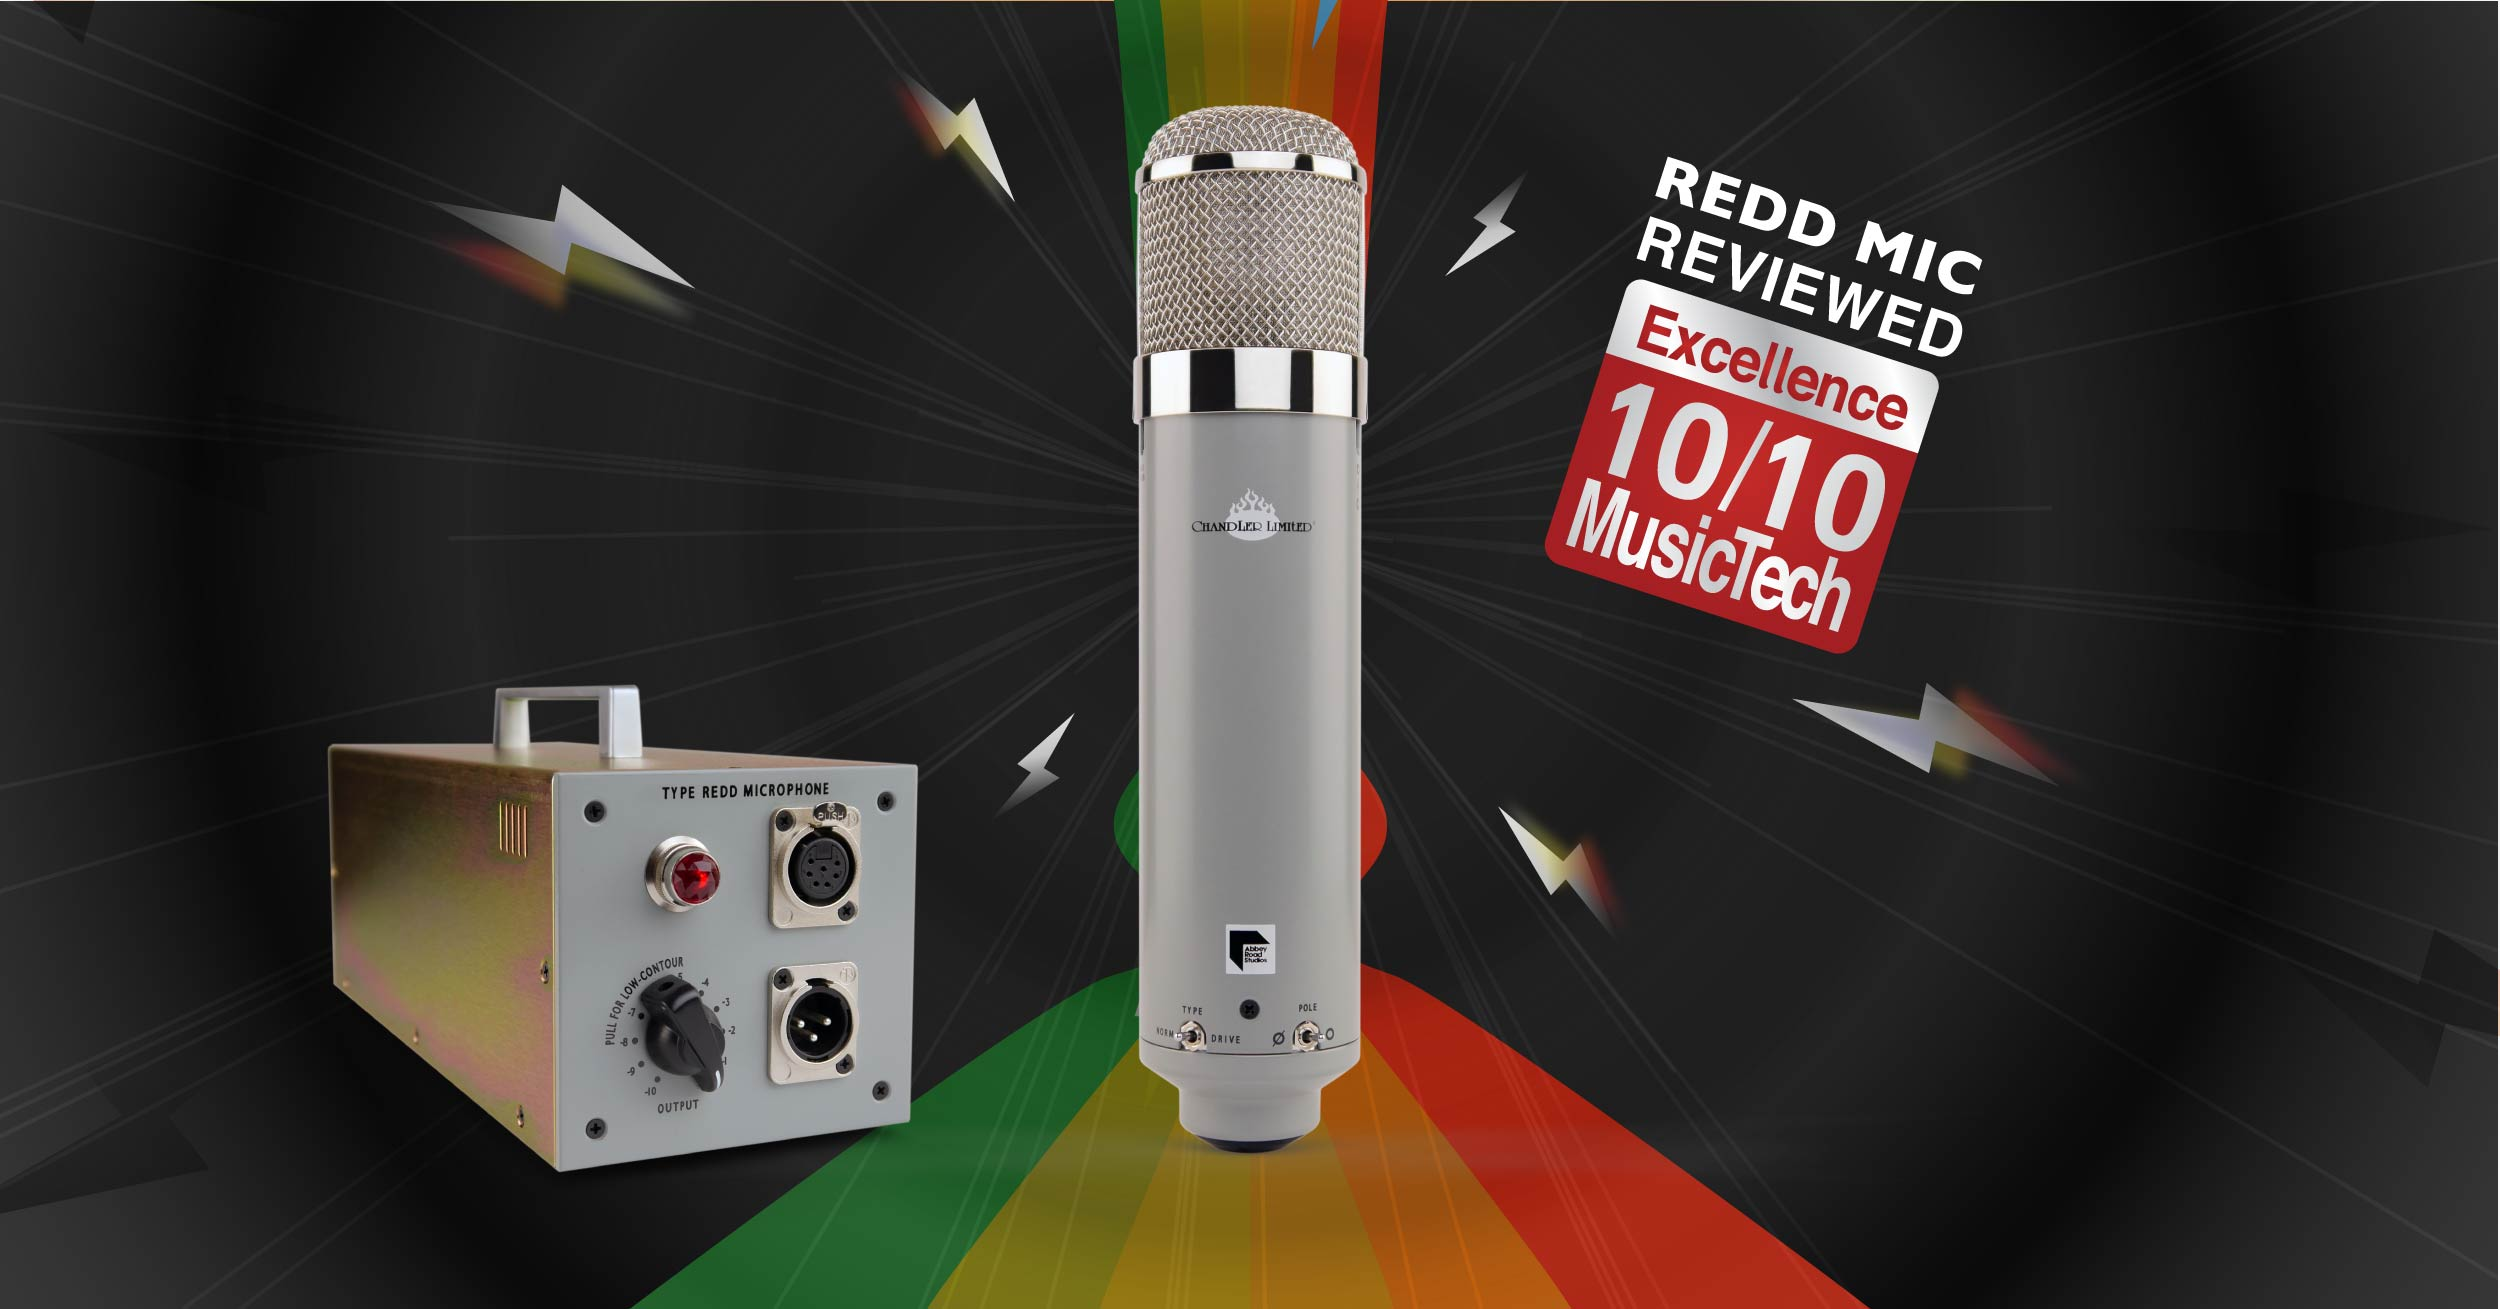 Chandler Limited REDD Microphone Review MusicTech Magazine October 2017 - EMI Abbey Road Studios